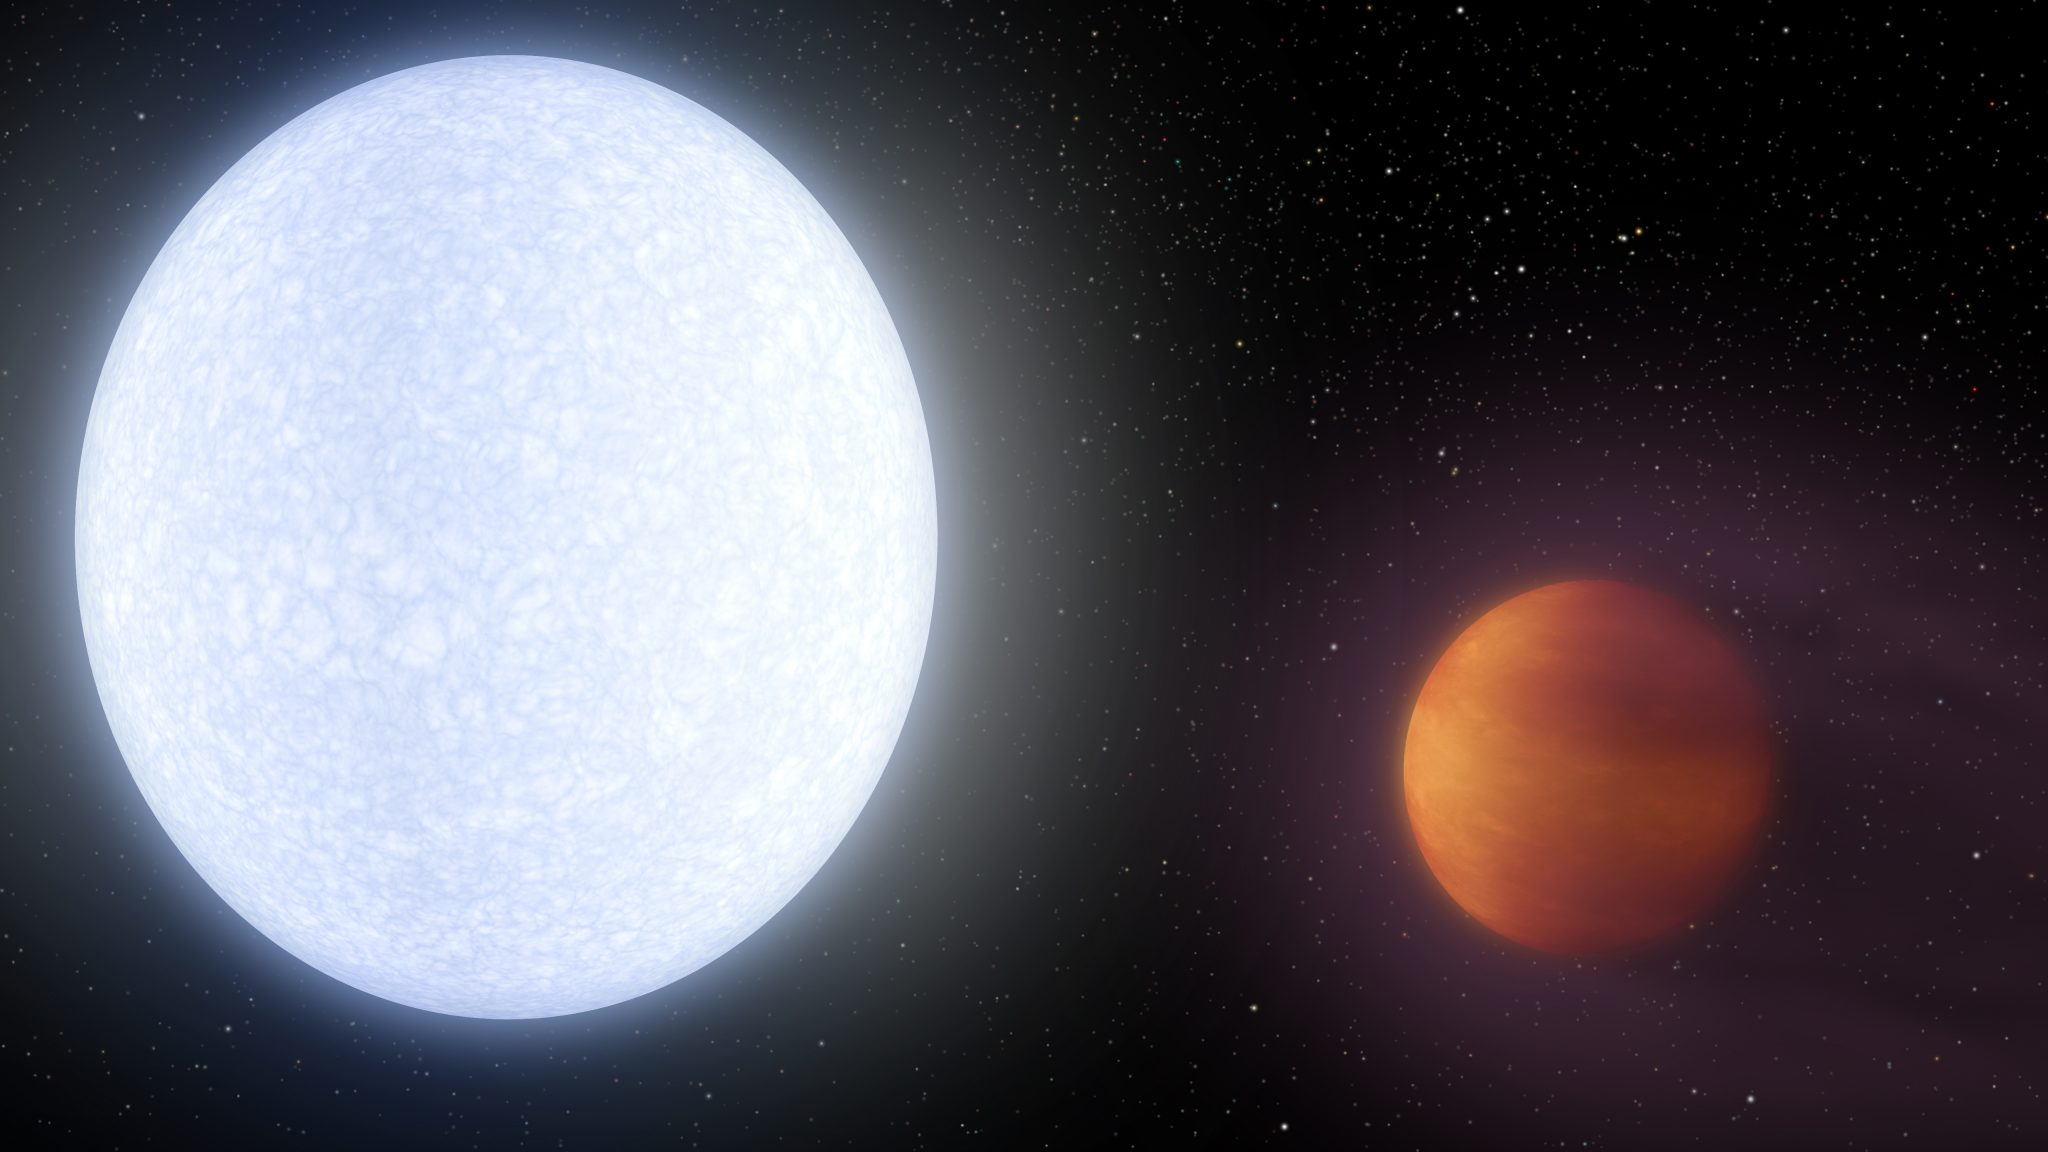 We've just found the hottest planet ever